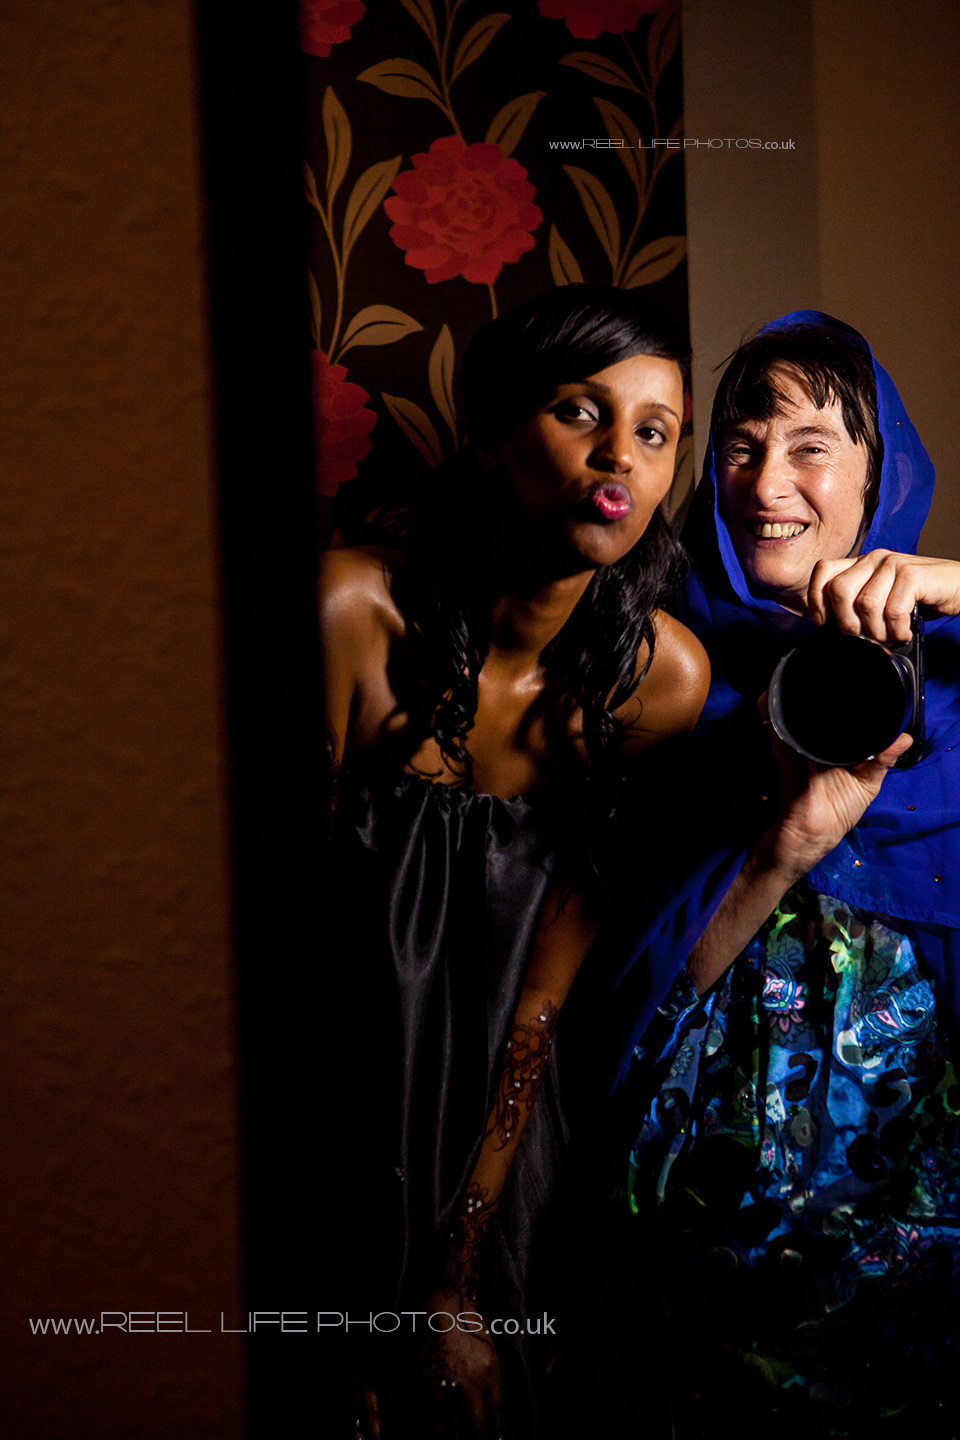 Wedding photographer Elaine with Somali bride